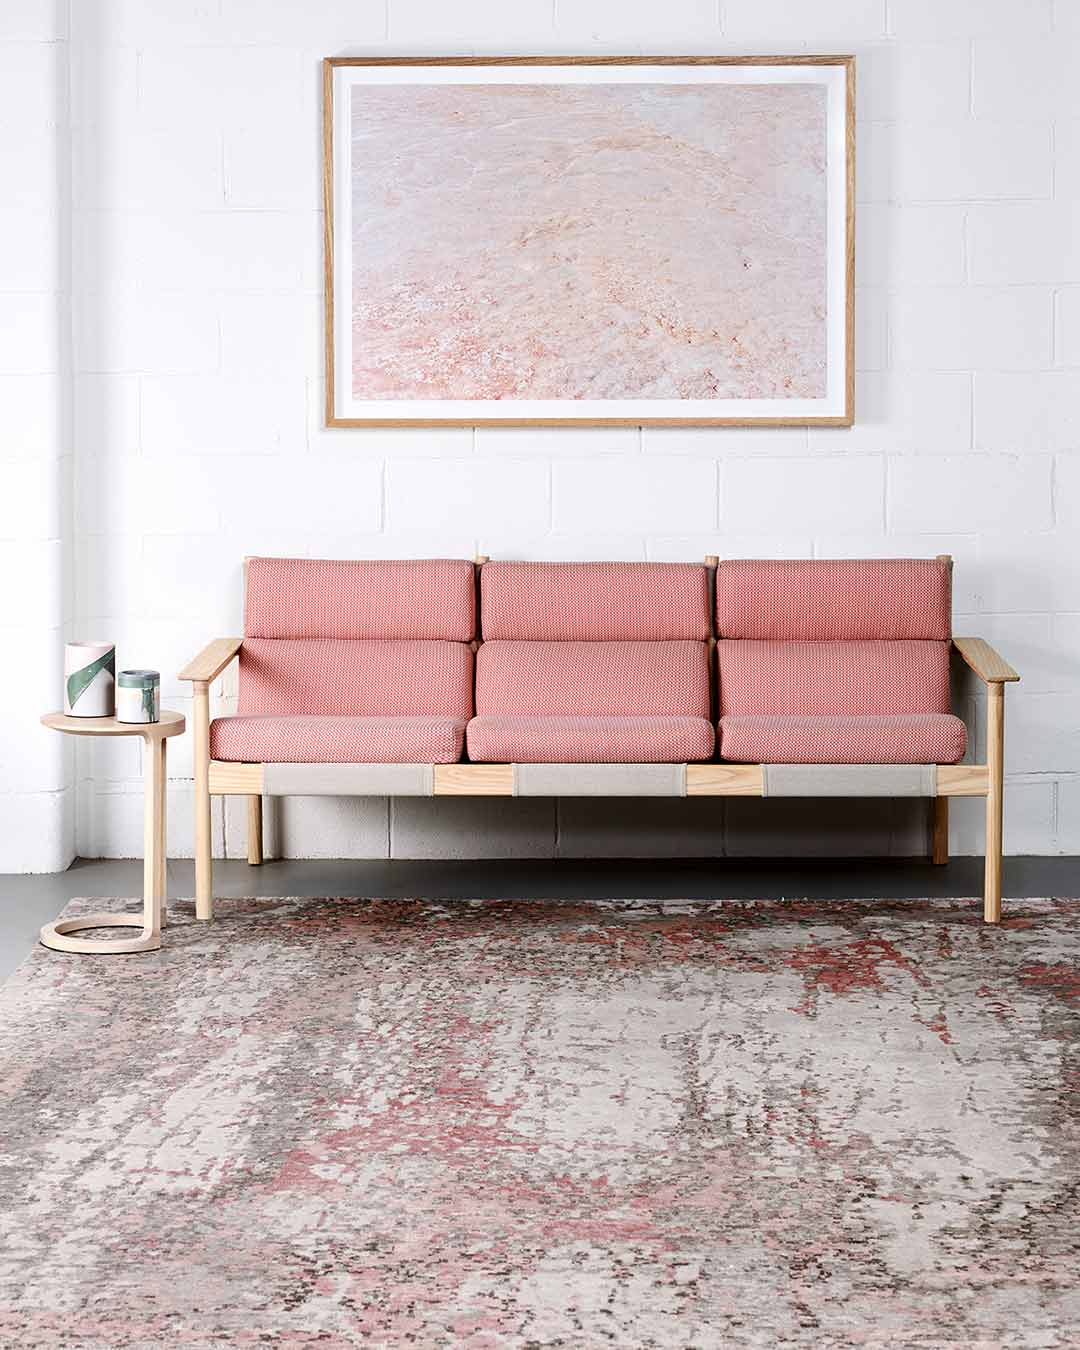 Living room image of distressed Flavia rug in pink colour